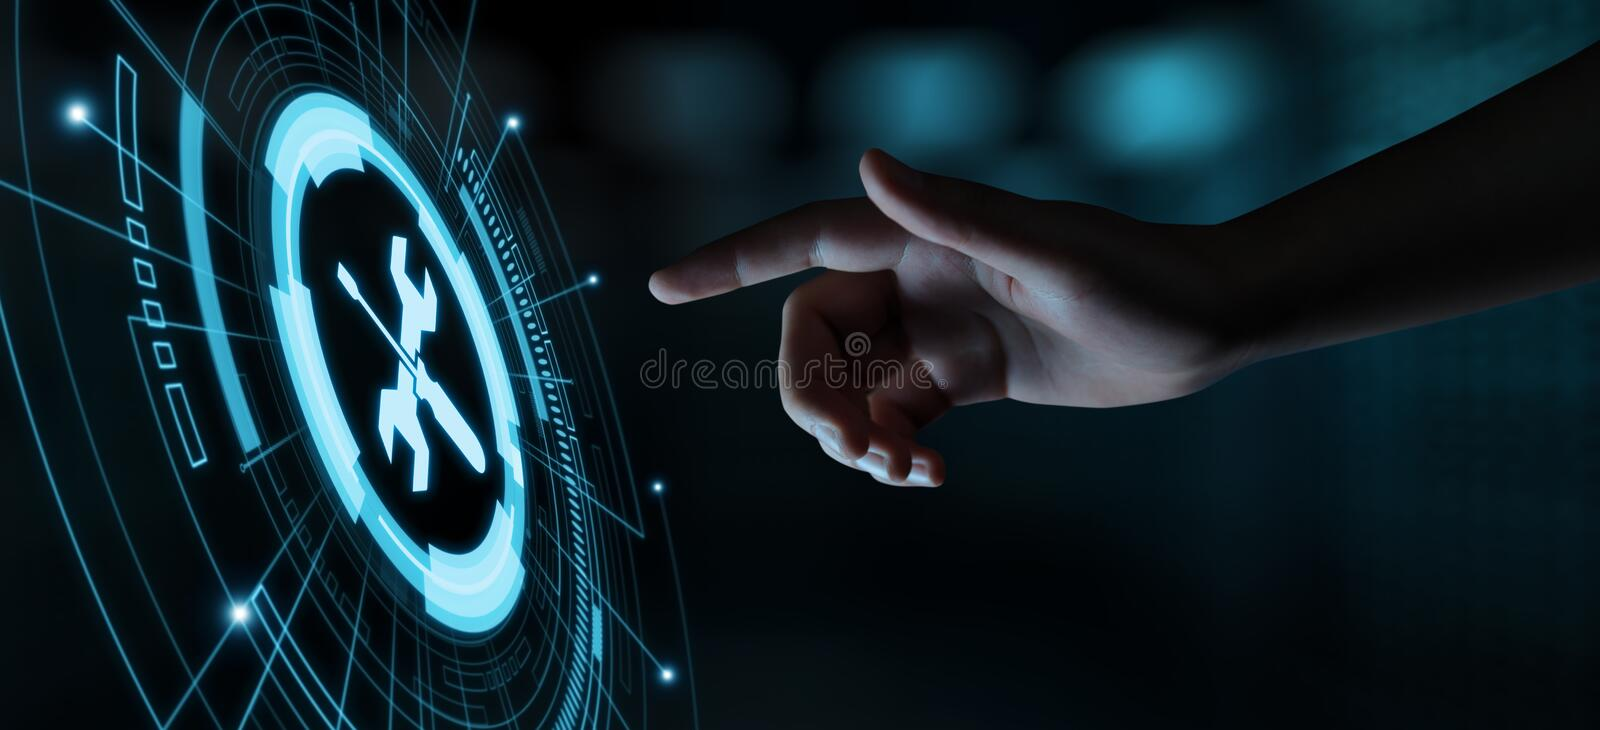 Technical Support Customer Service Business Technology Internet Concept.  royalty free stock photos